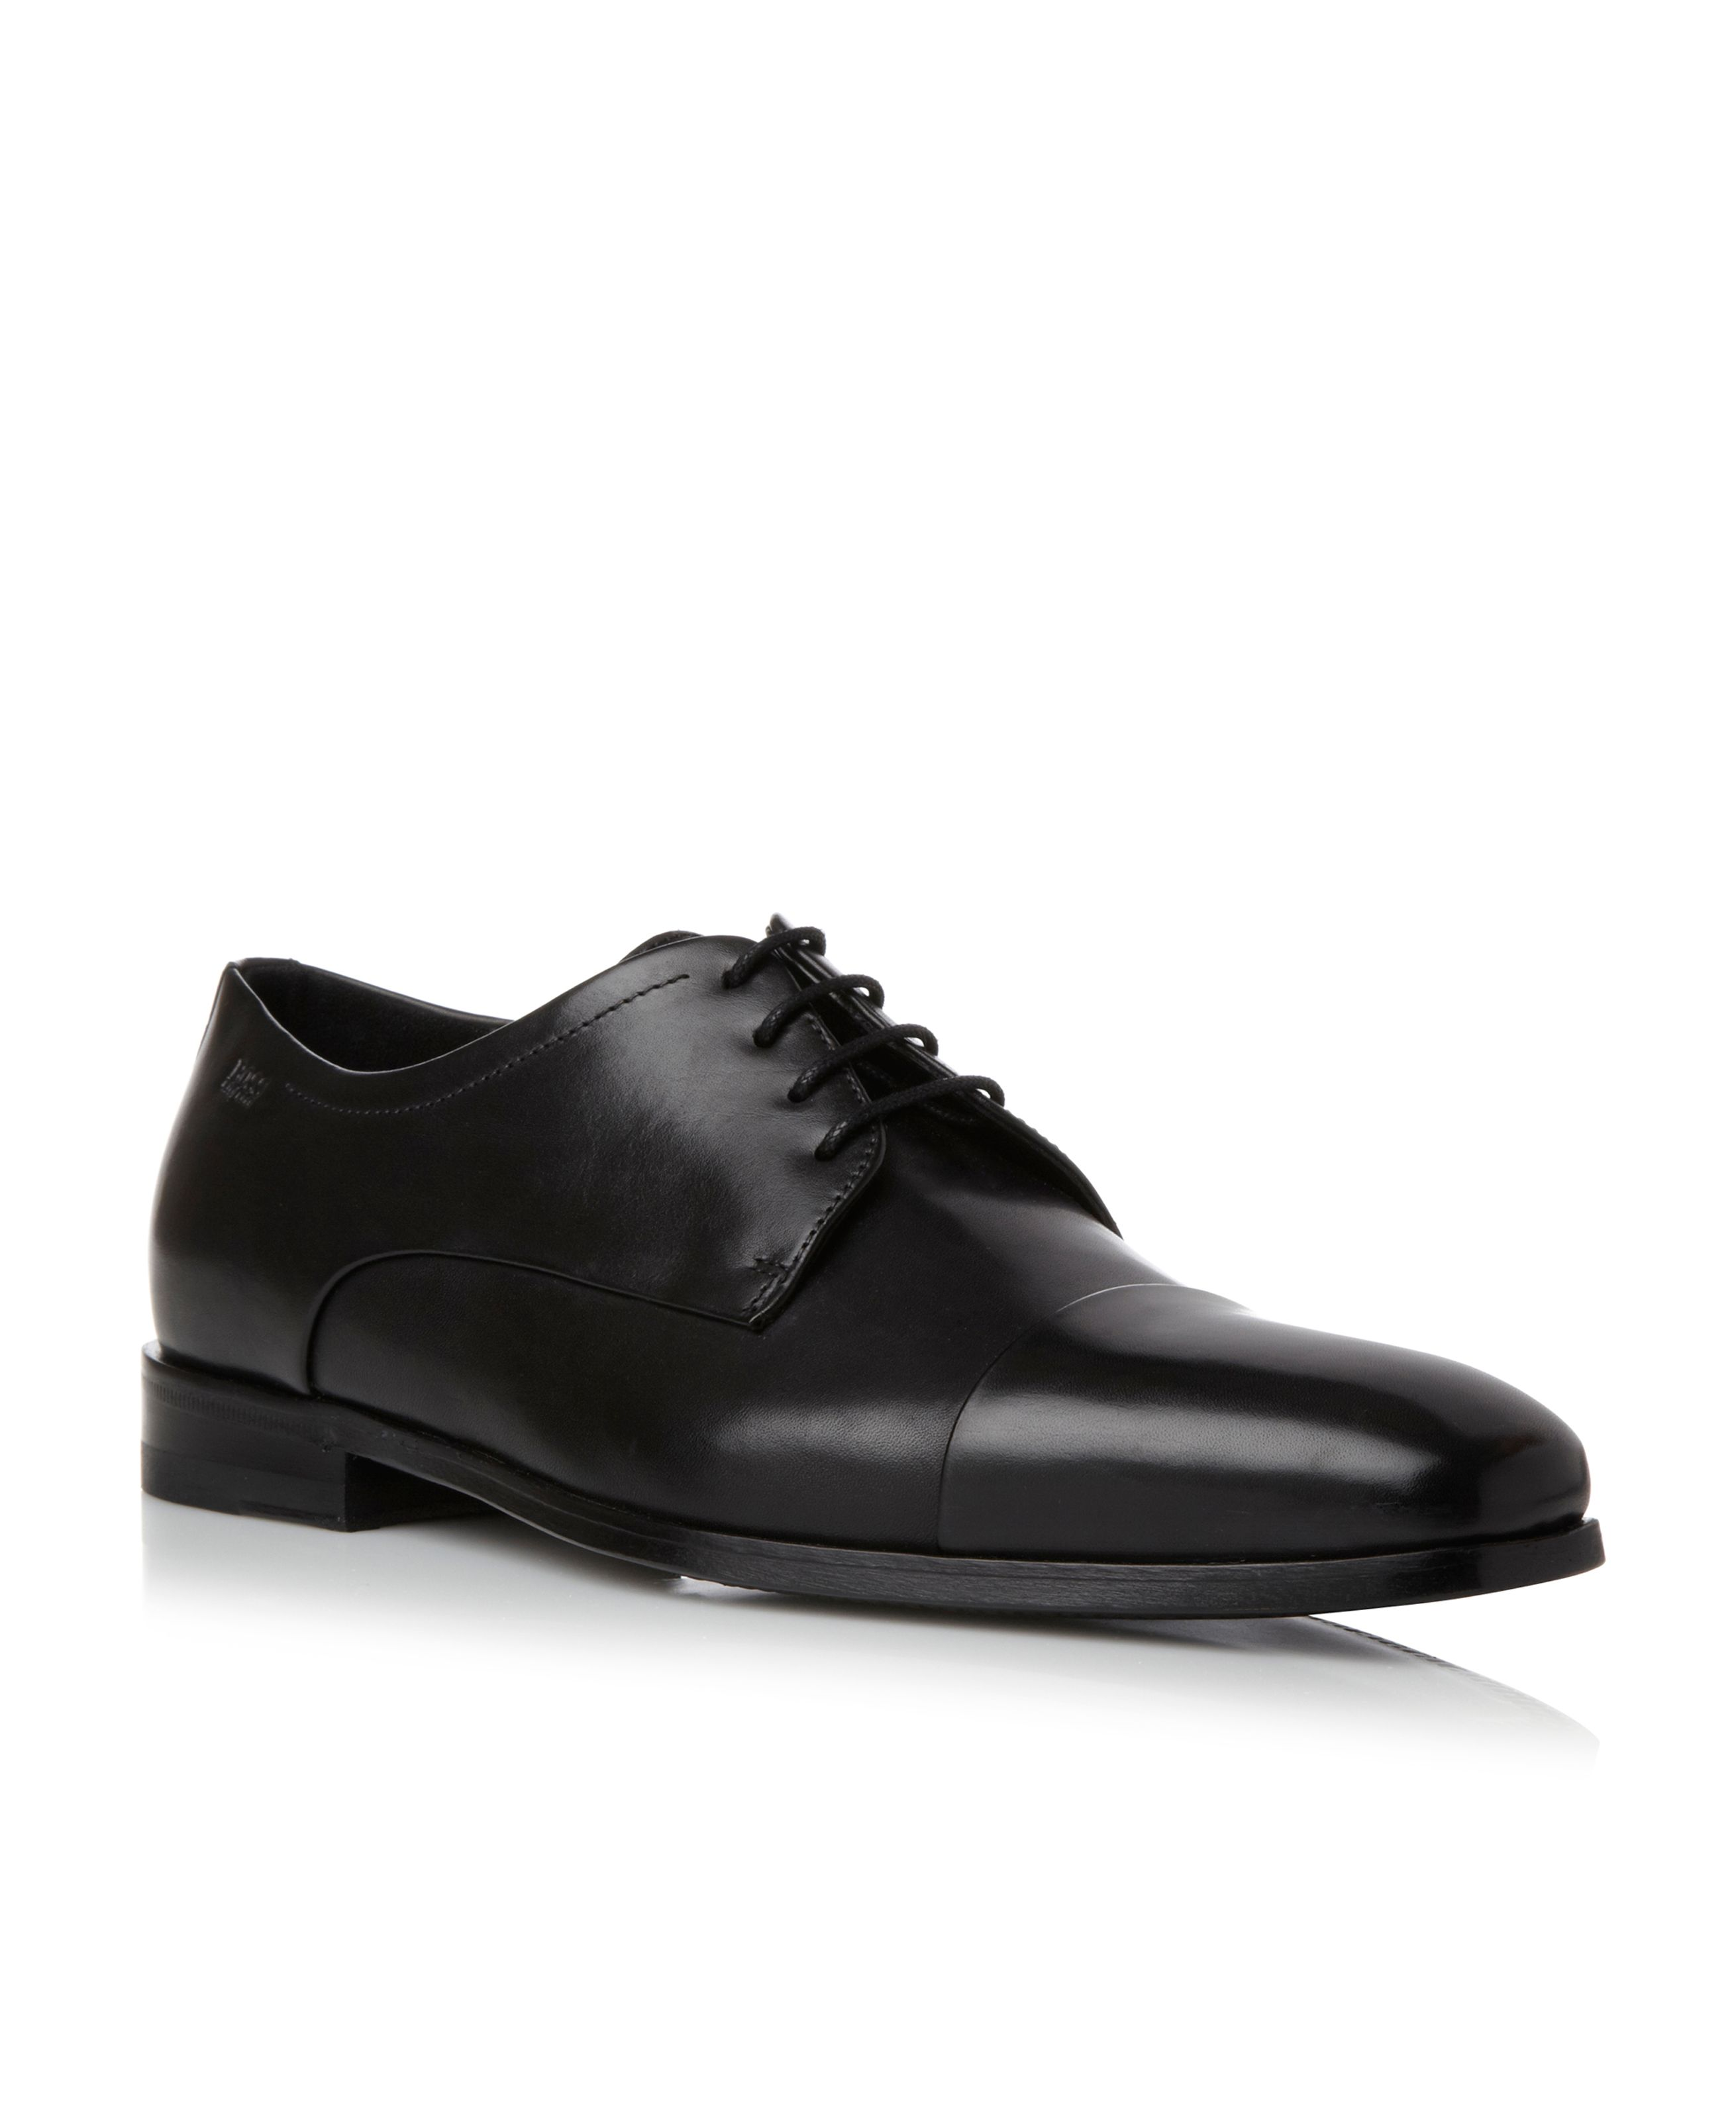 Coloson 4 eye lace formal shoes